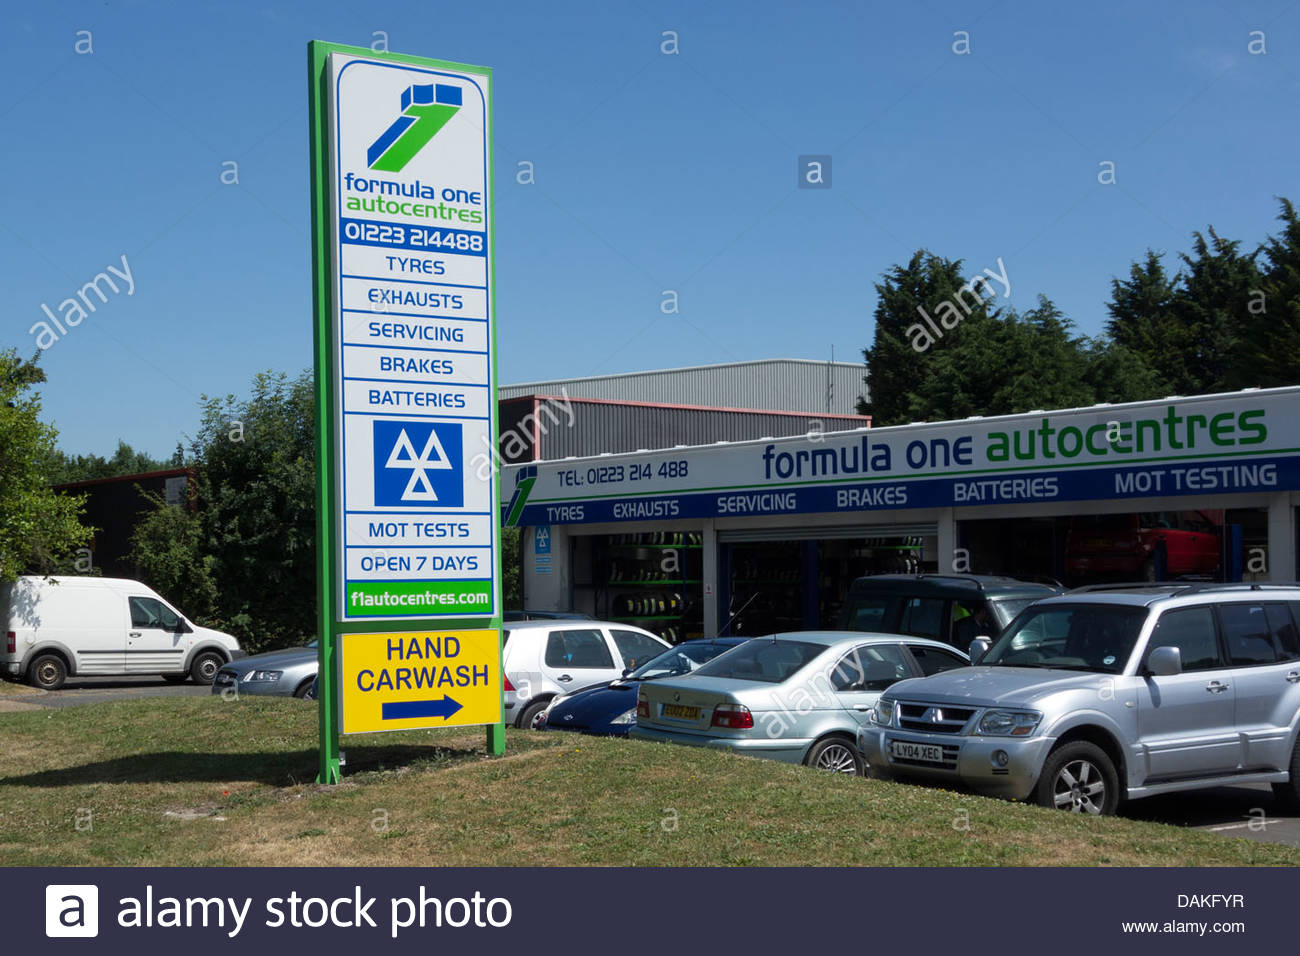 Formula One Autocentre in Barnwell Road, Cambridge - Stock Image